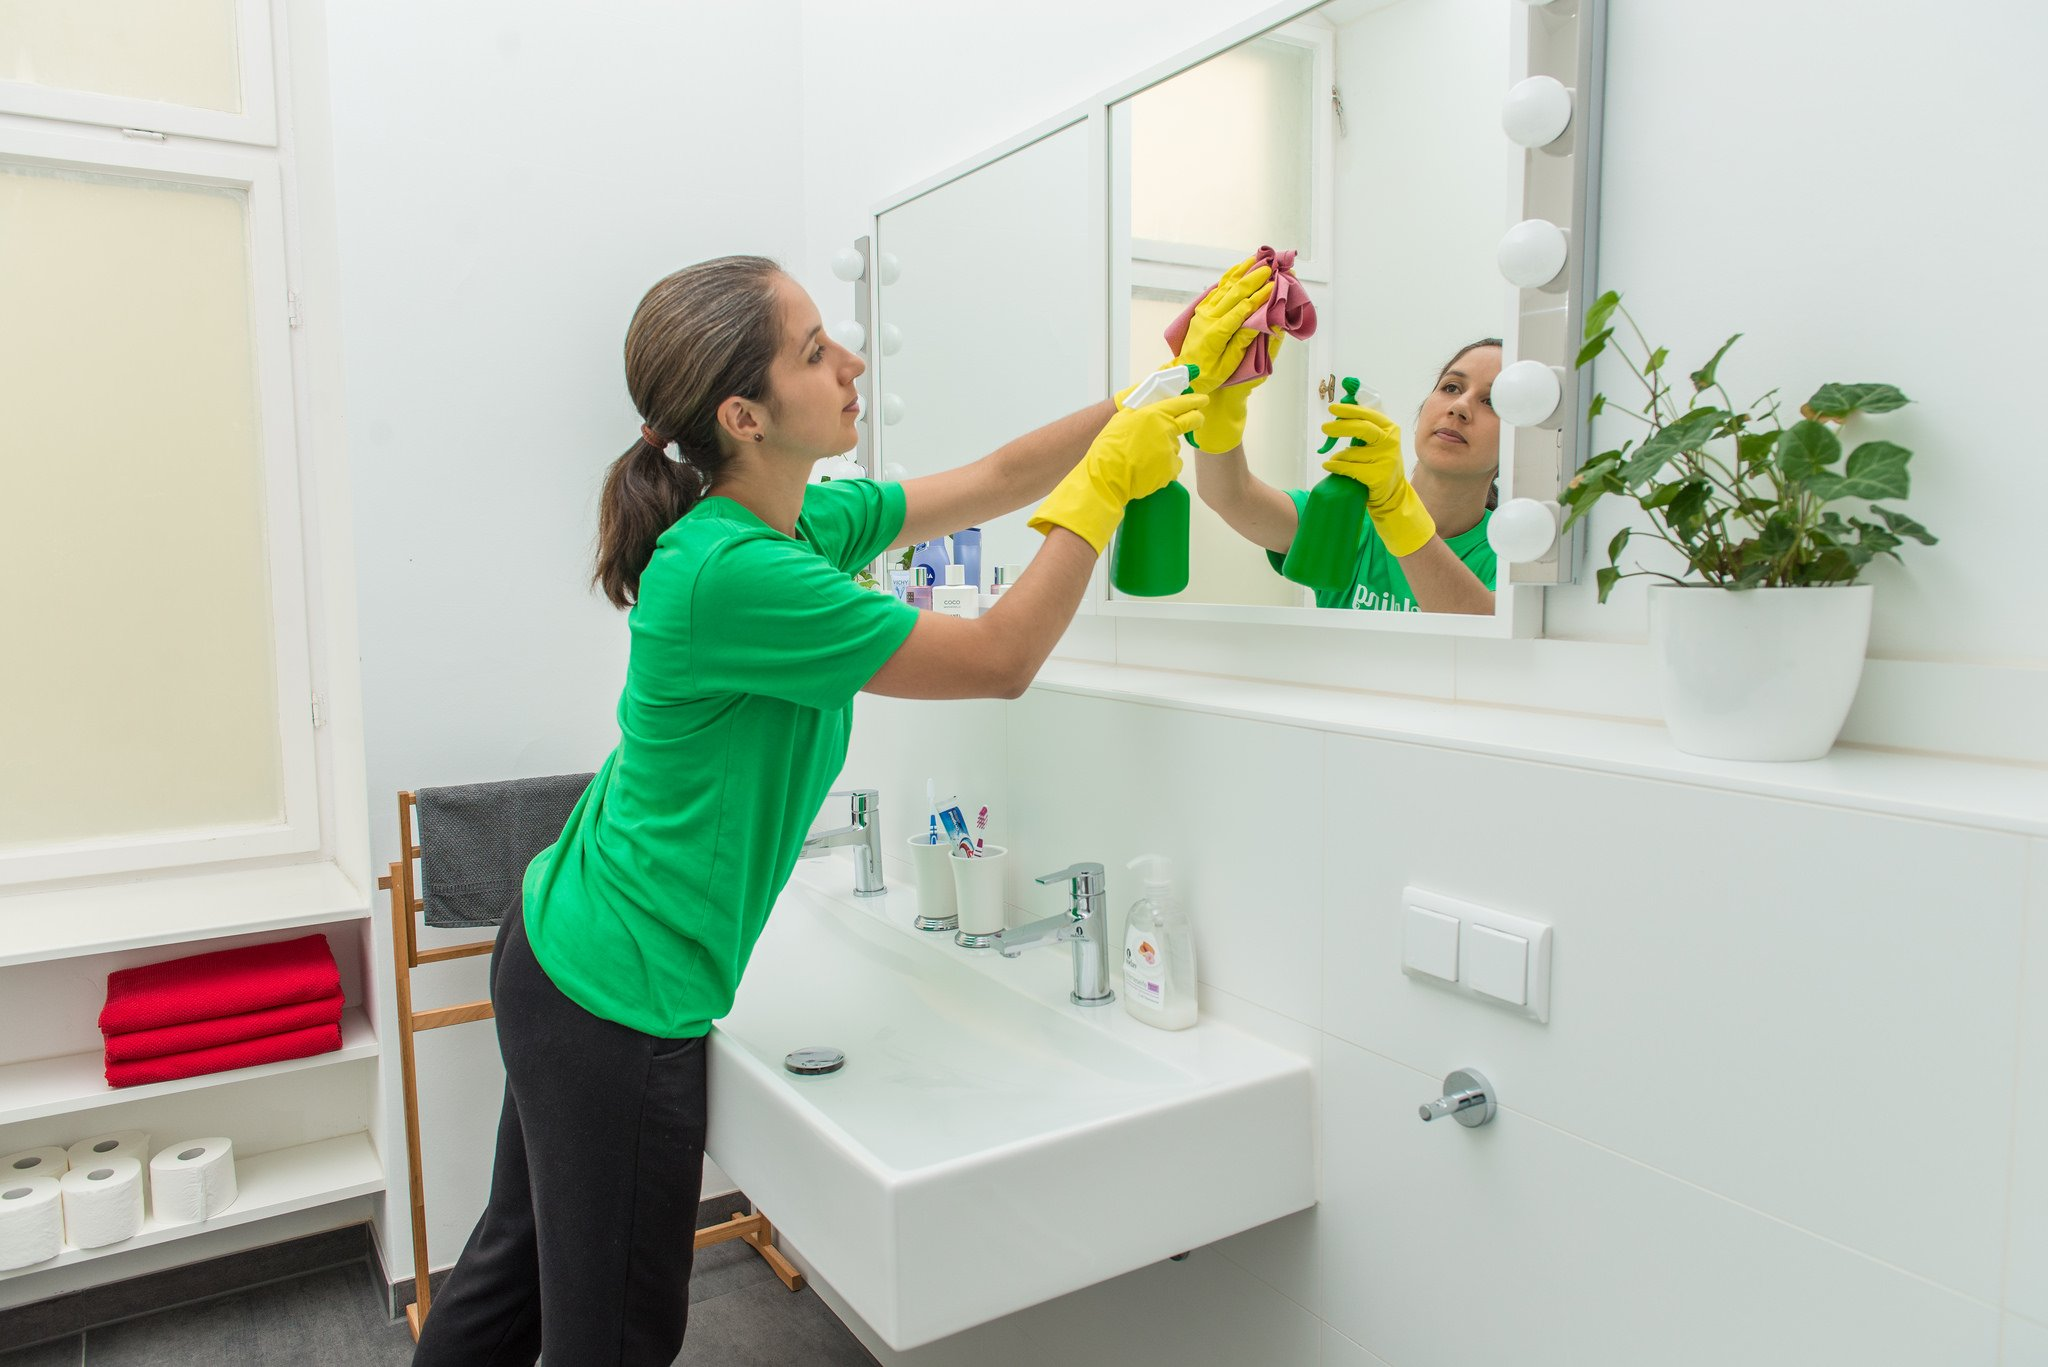 Toilet and bathroom cleaning services in pune and pimpri chinchwad